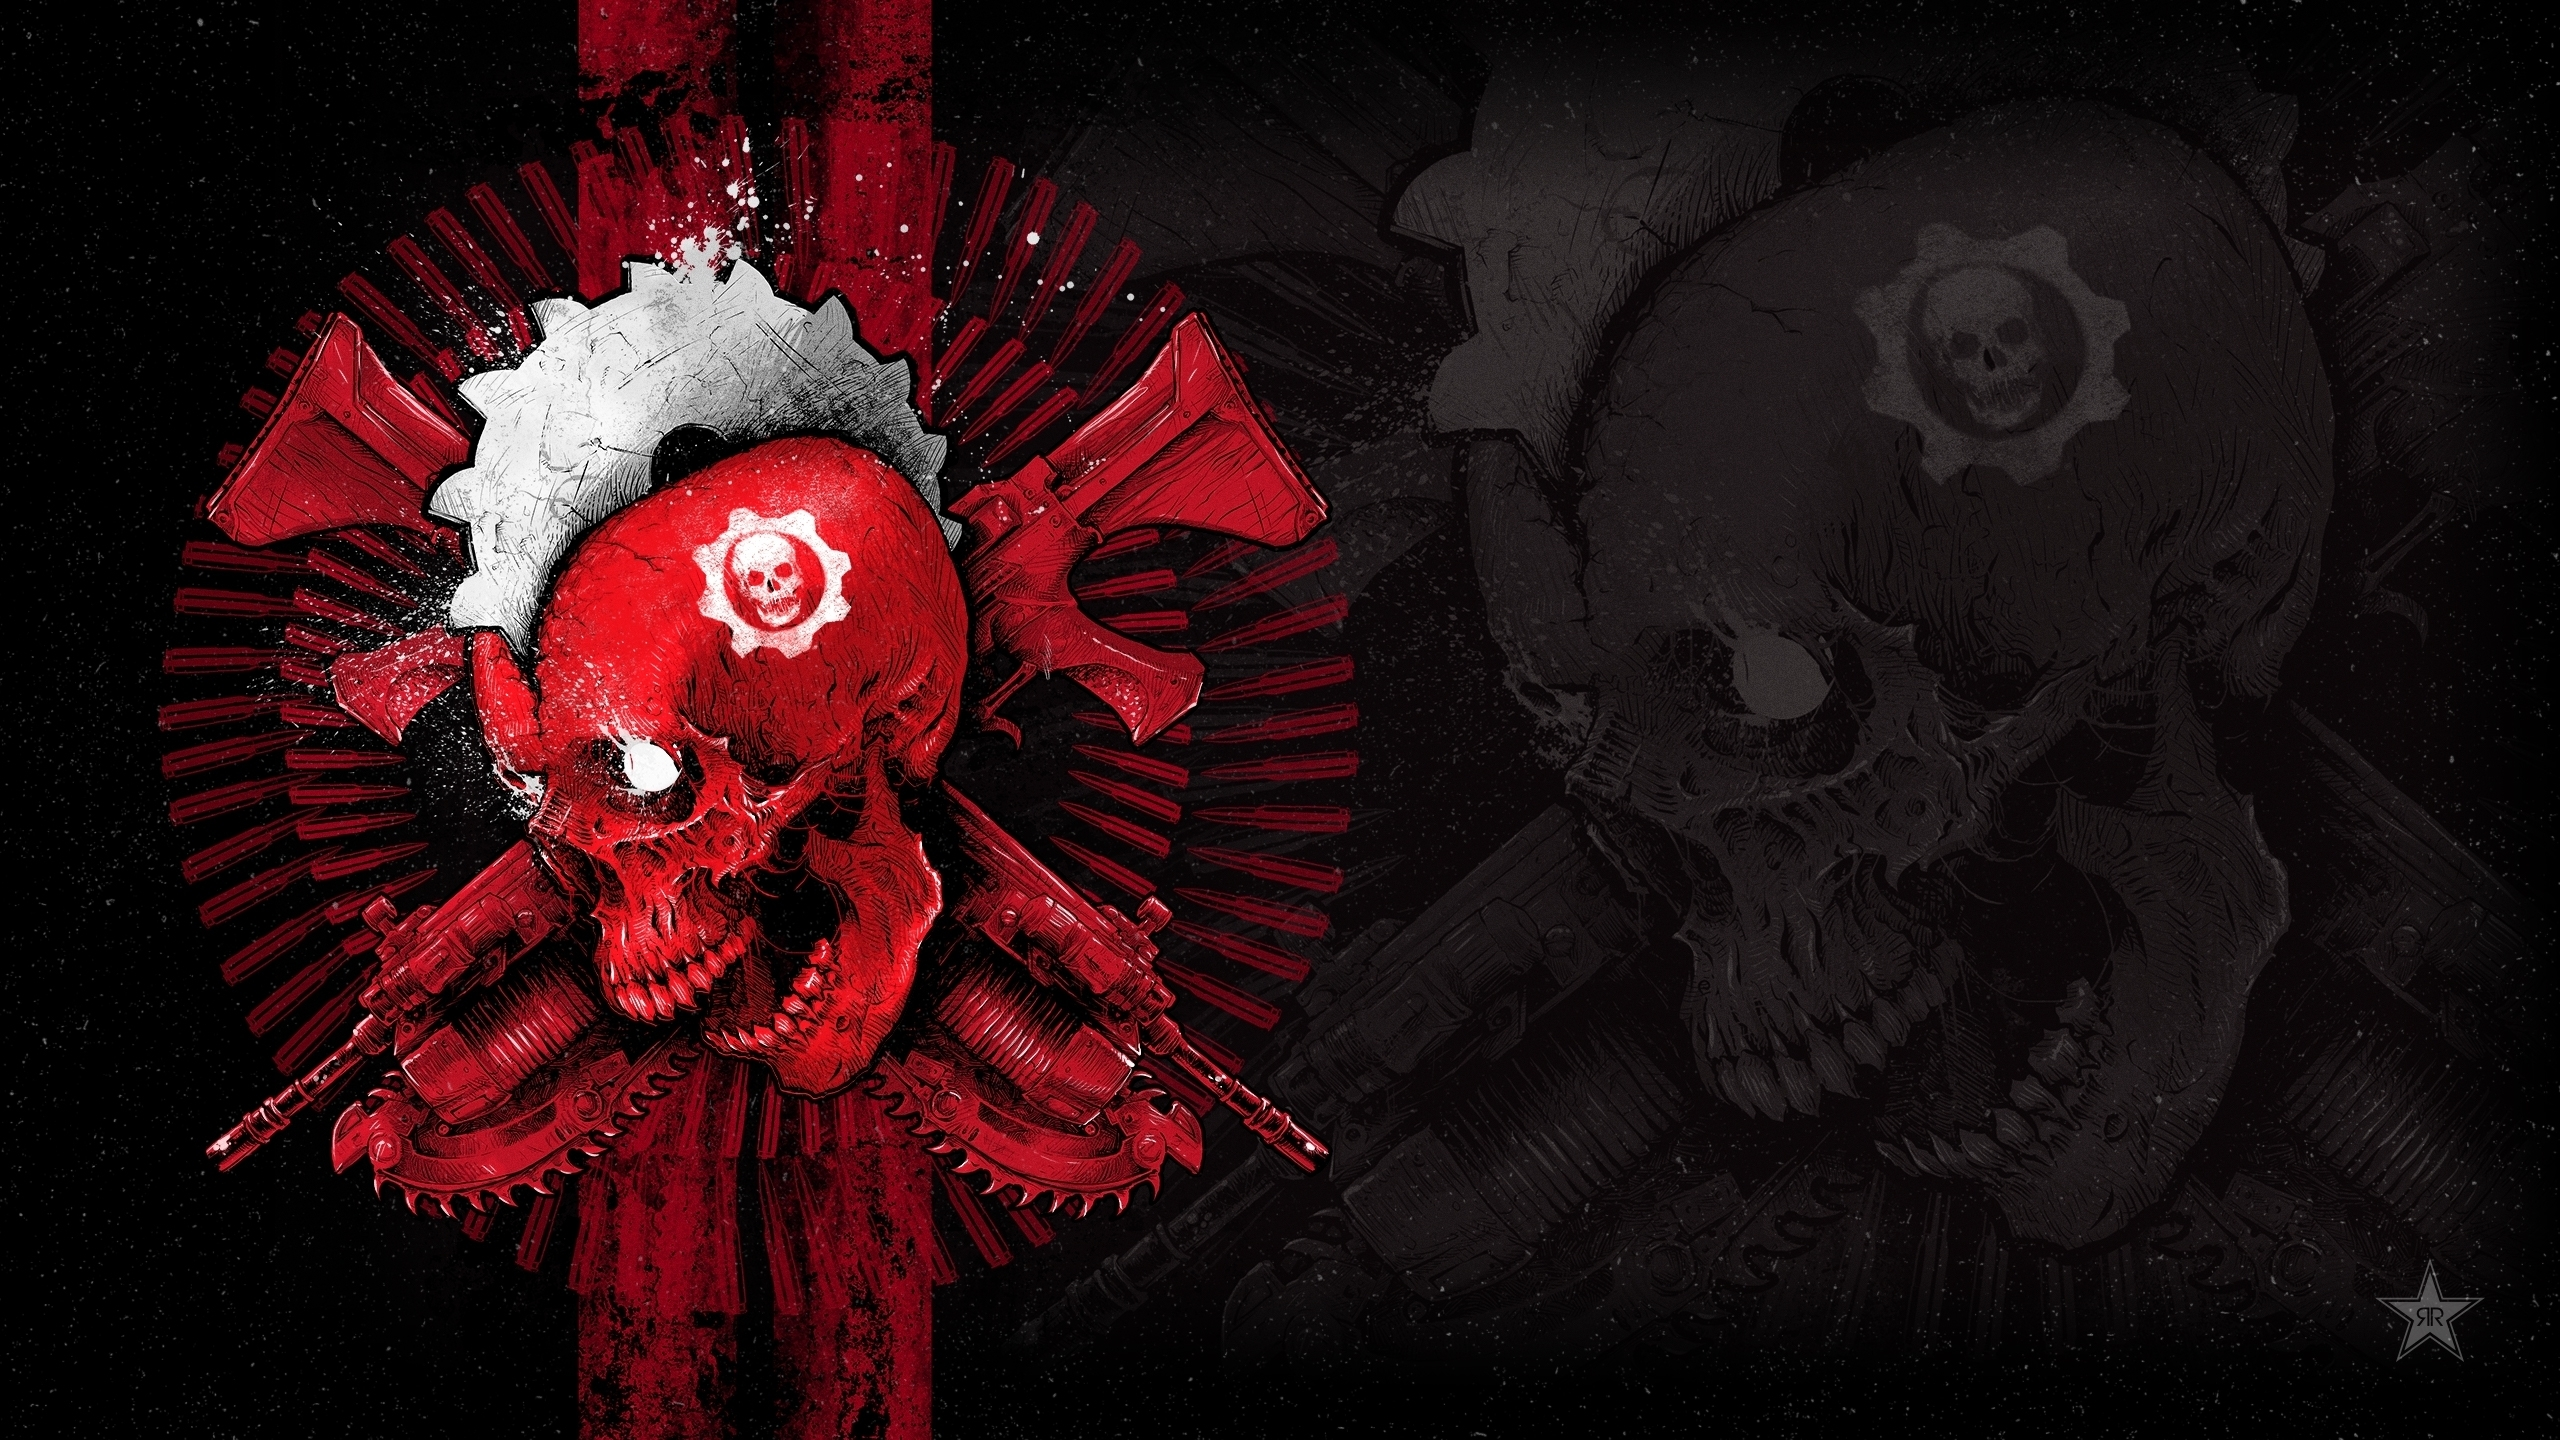 Gears 4k Wallpapers For Your Desktop Or Mobile Screen Free